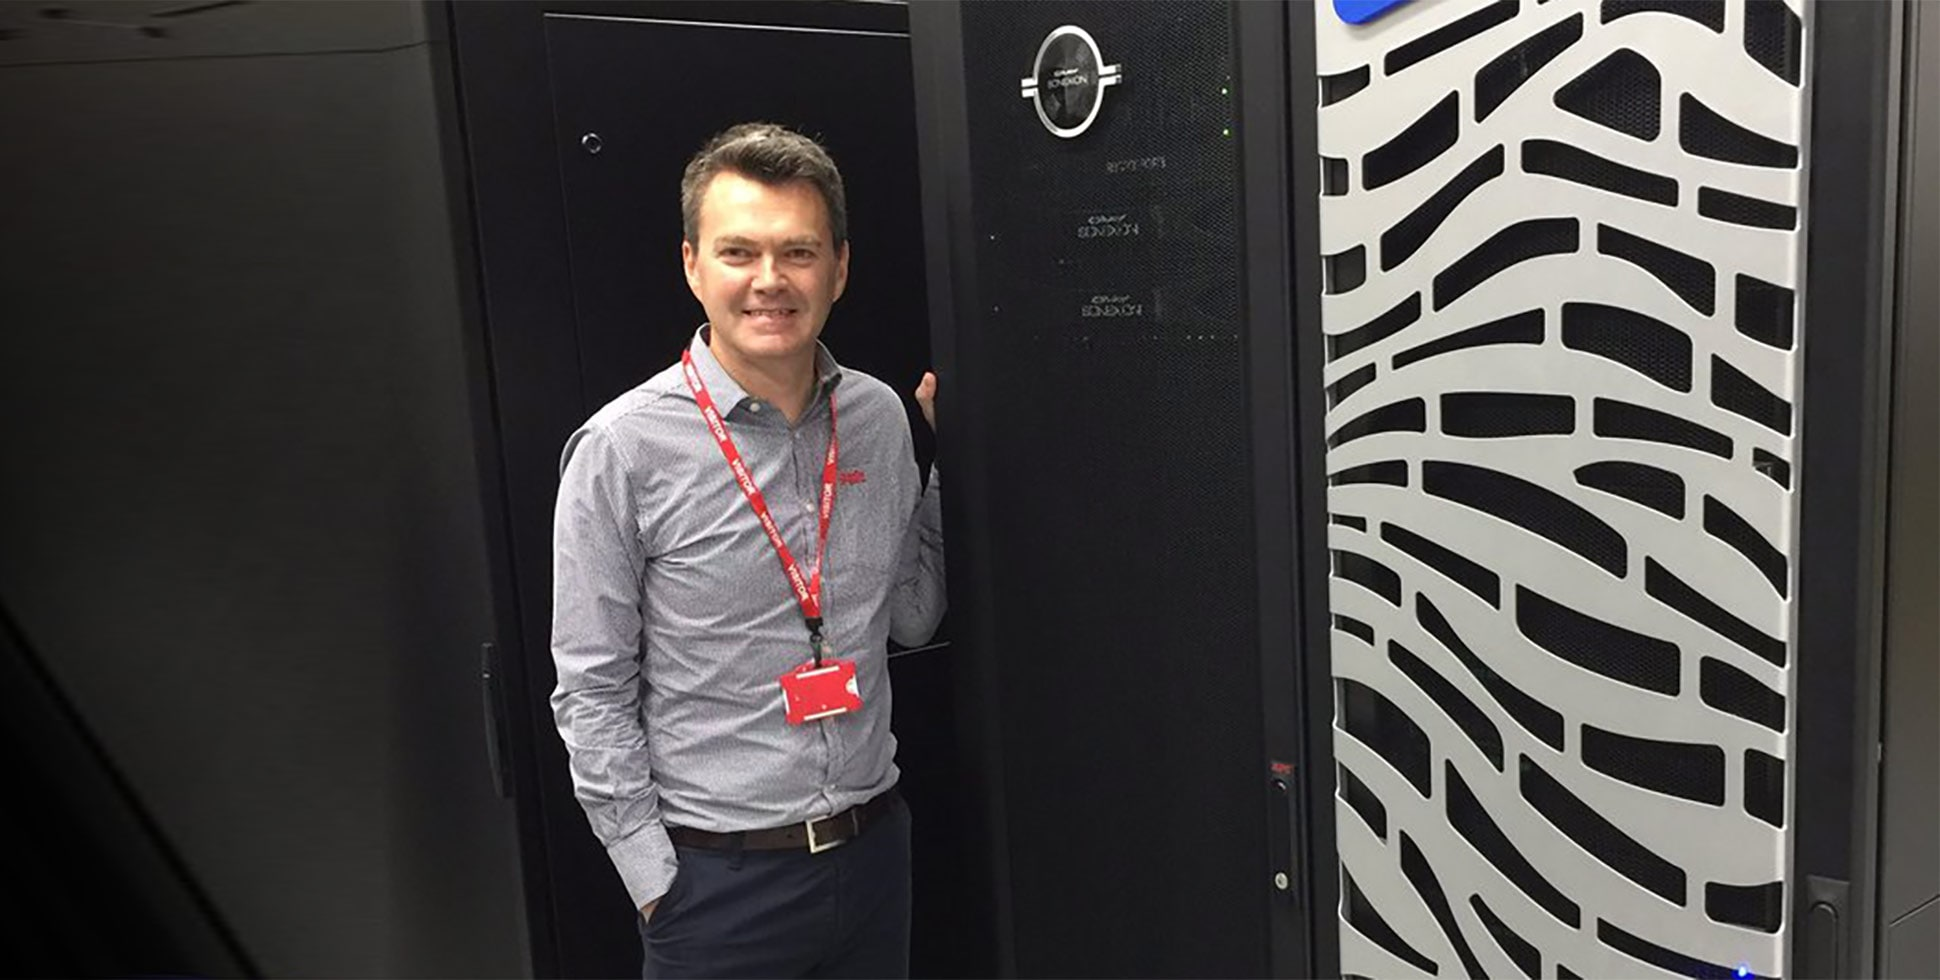 Approaching Exascale: Arm-based Supercomputers Lead the HPC Charge